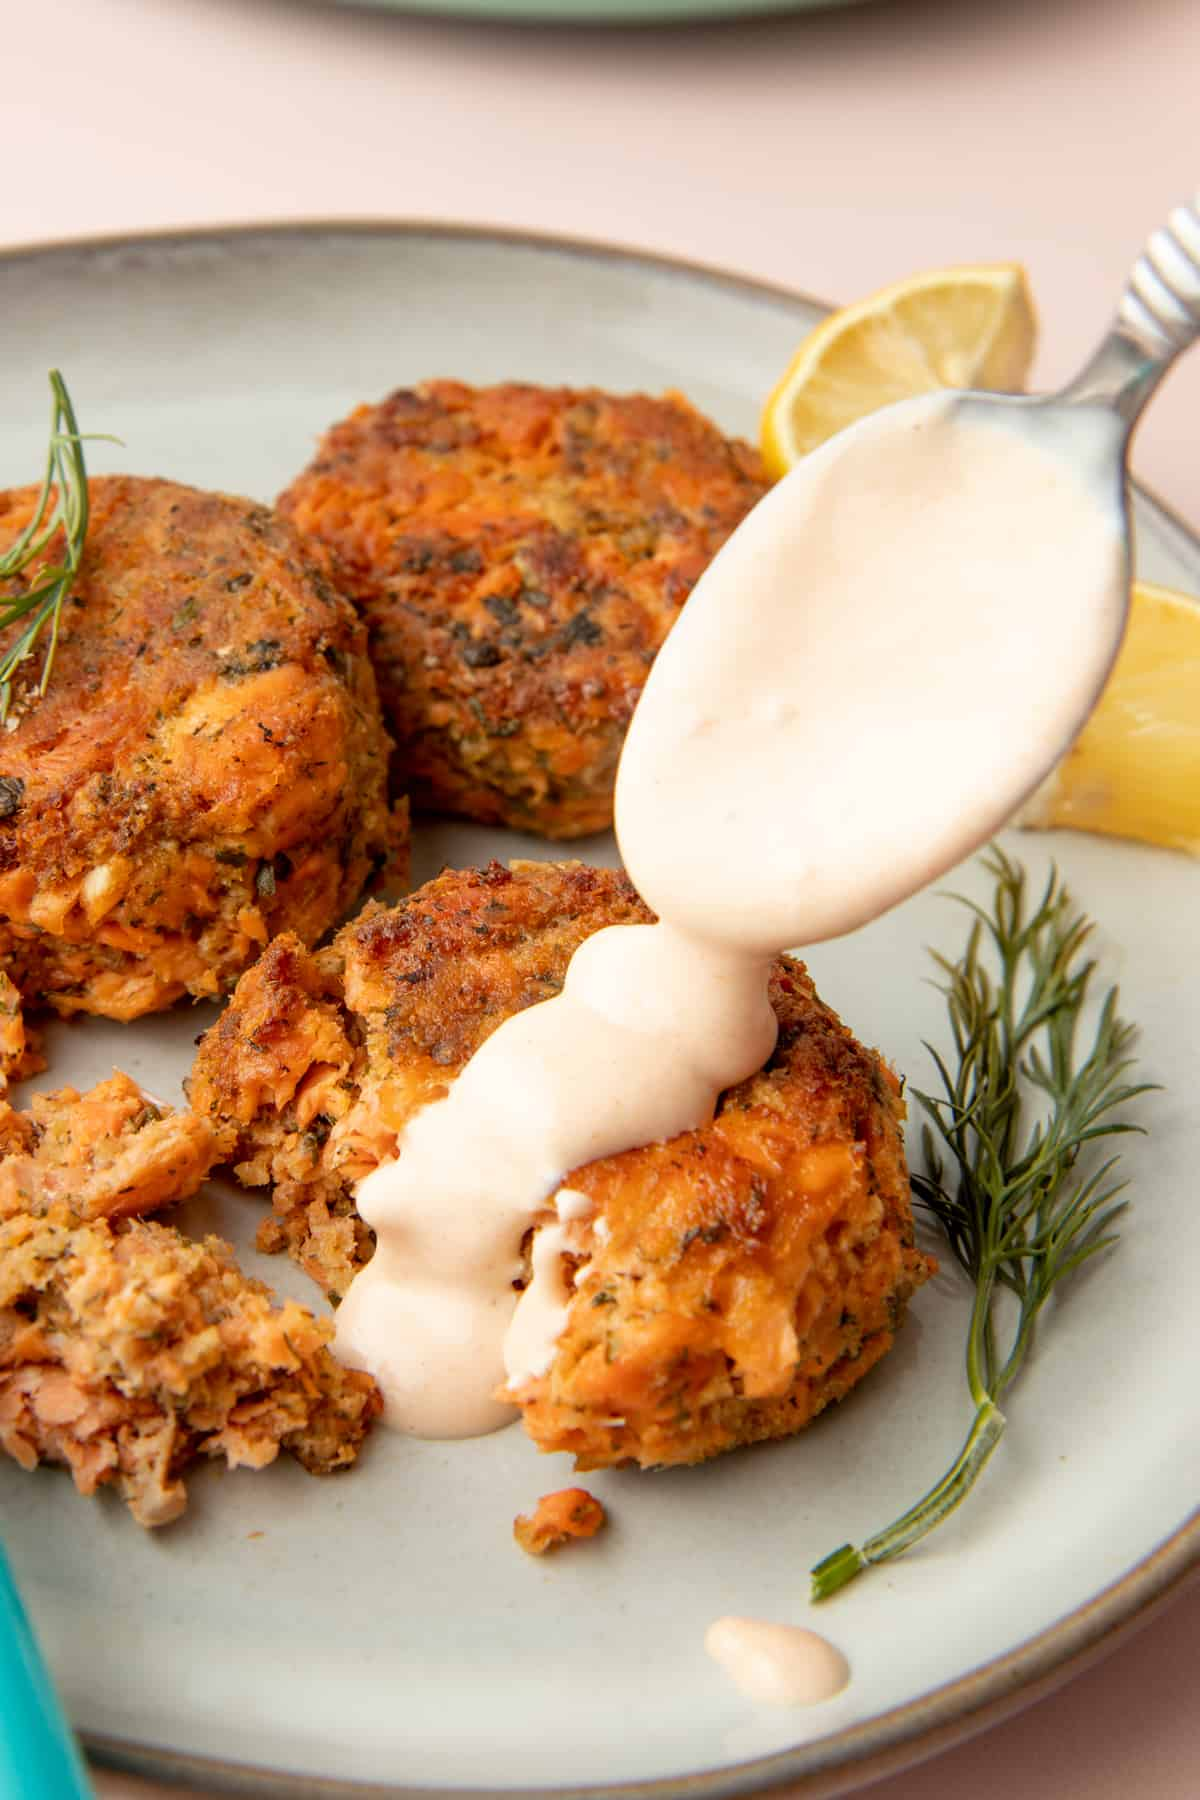 A spoon pours Remoulade Sauce over salmon cakes sitting on a plate. A sprig of dill sits nearby.